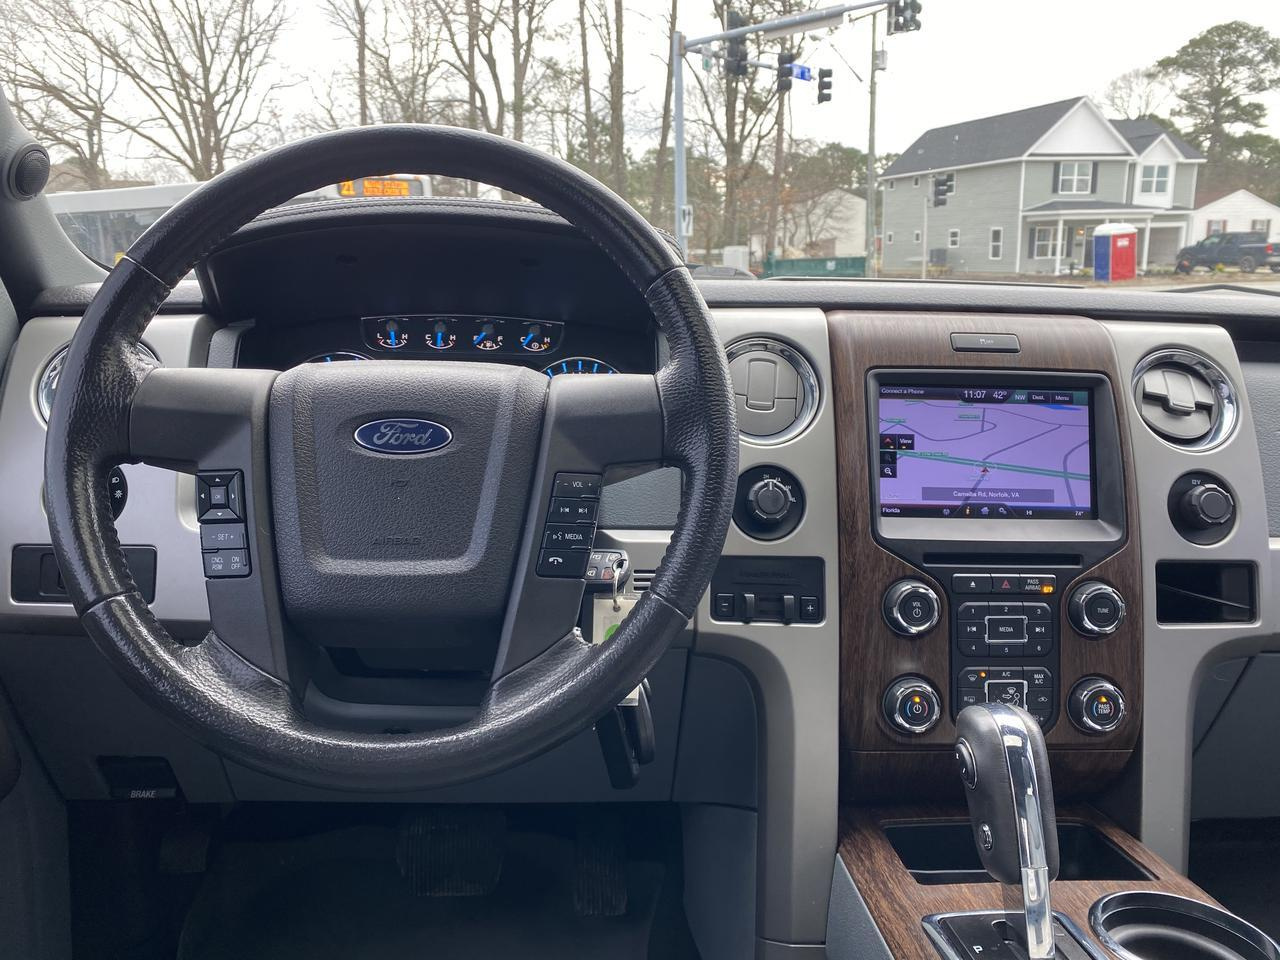 2013 FORD F-150 LARIAT SUPERCREW 4X4, WARRANTY, LEATHER, NAV, HEATED SEATS, BLUETOOTH, BACKUP CAM, 1 OWNER, CLEAN! Norfolk VA